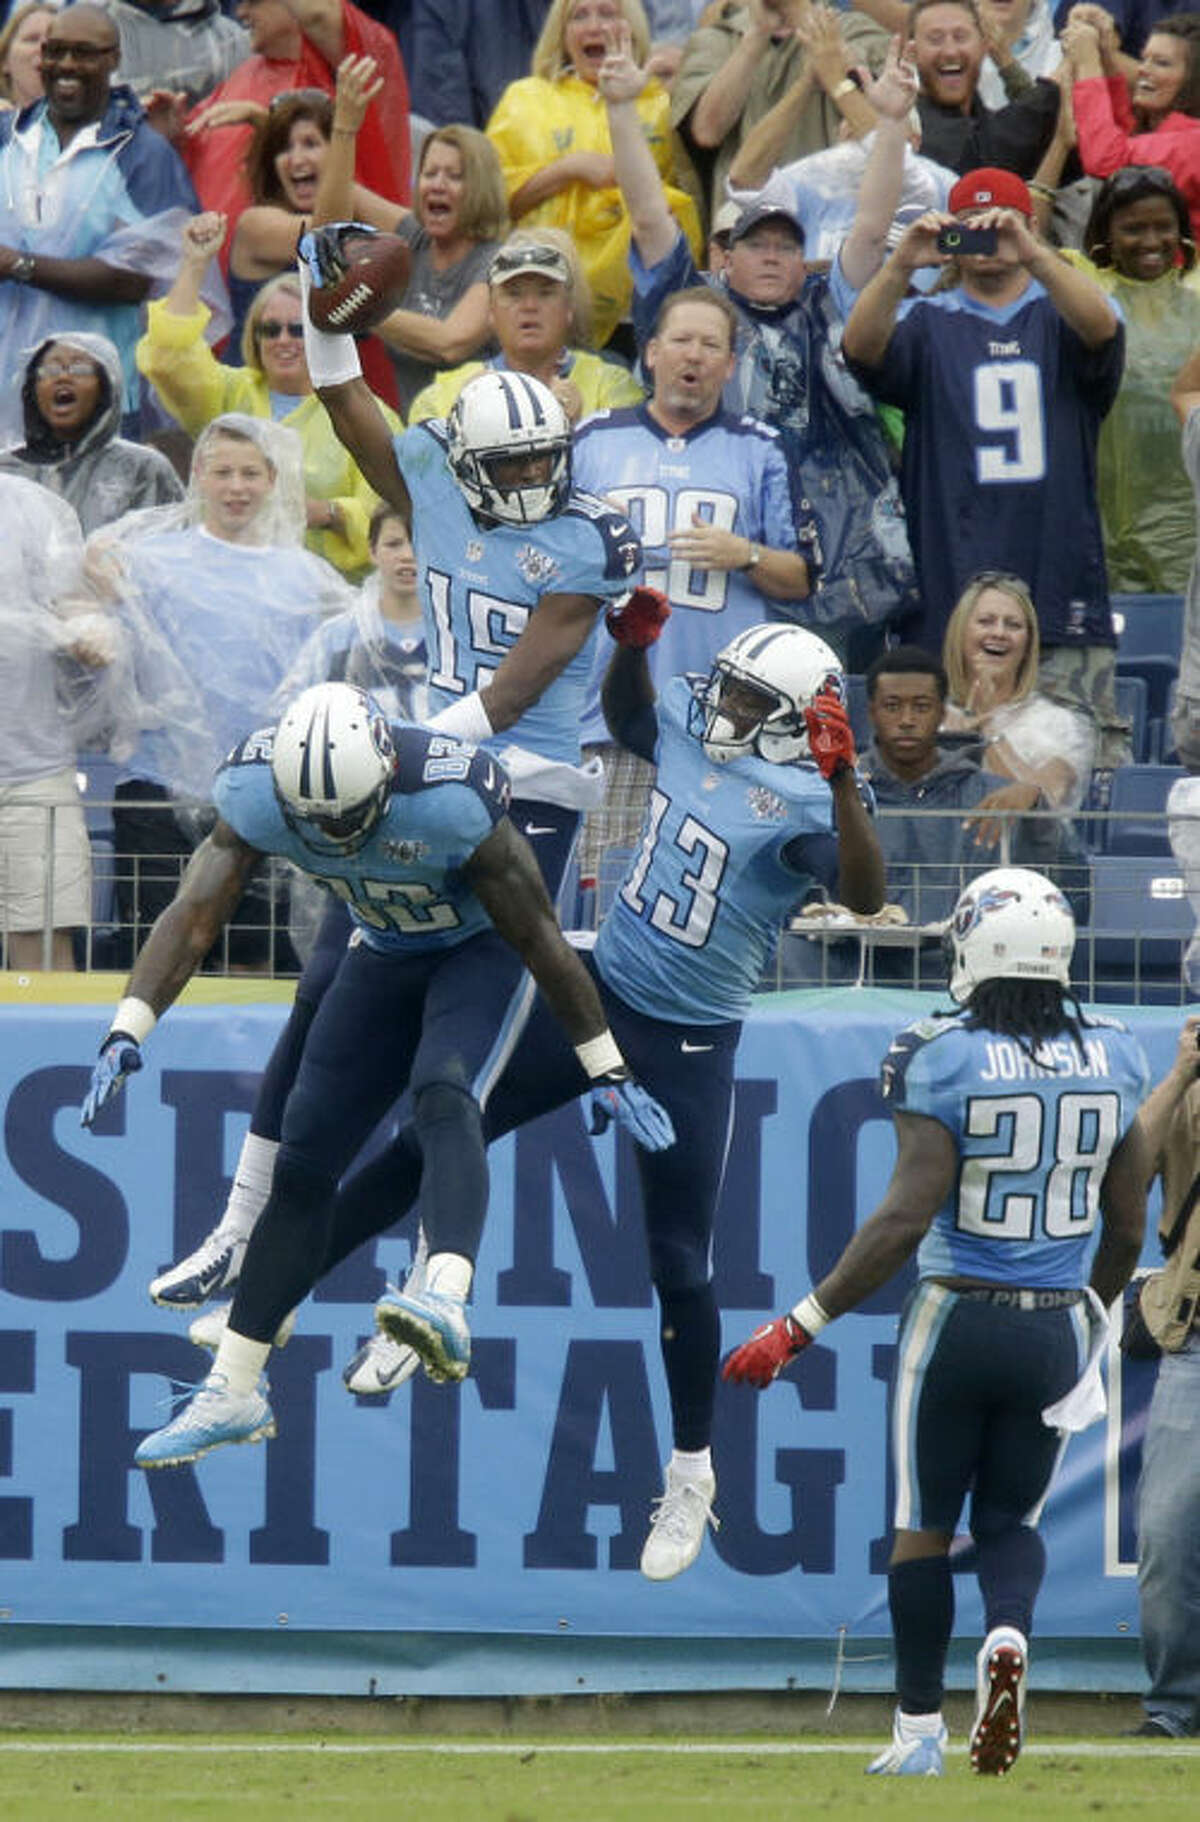 Tennessee Titans wide receiver Justin Hunter (15) celebrates with Delanie Walker (82) and Kendall Wright (13) after Hunter caught a 16-yard touchdown pass against the New York Jets in the second quarter of an NFL football game on Sunday, Sept. 29, 2013, in Nashville, Tenn. Titans running back Chris Johnson (28) runs to join in. (AP Photo/Wade Payne)